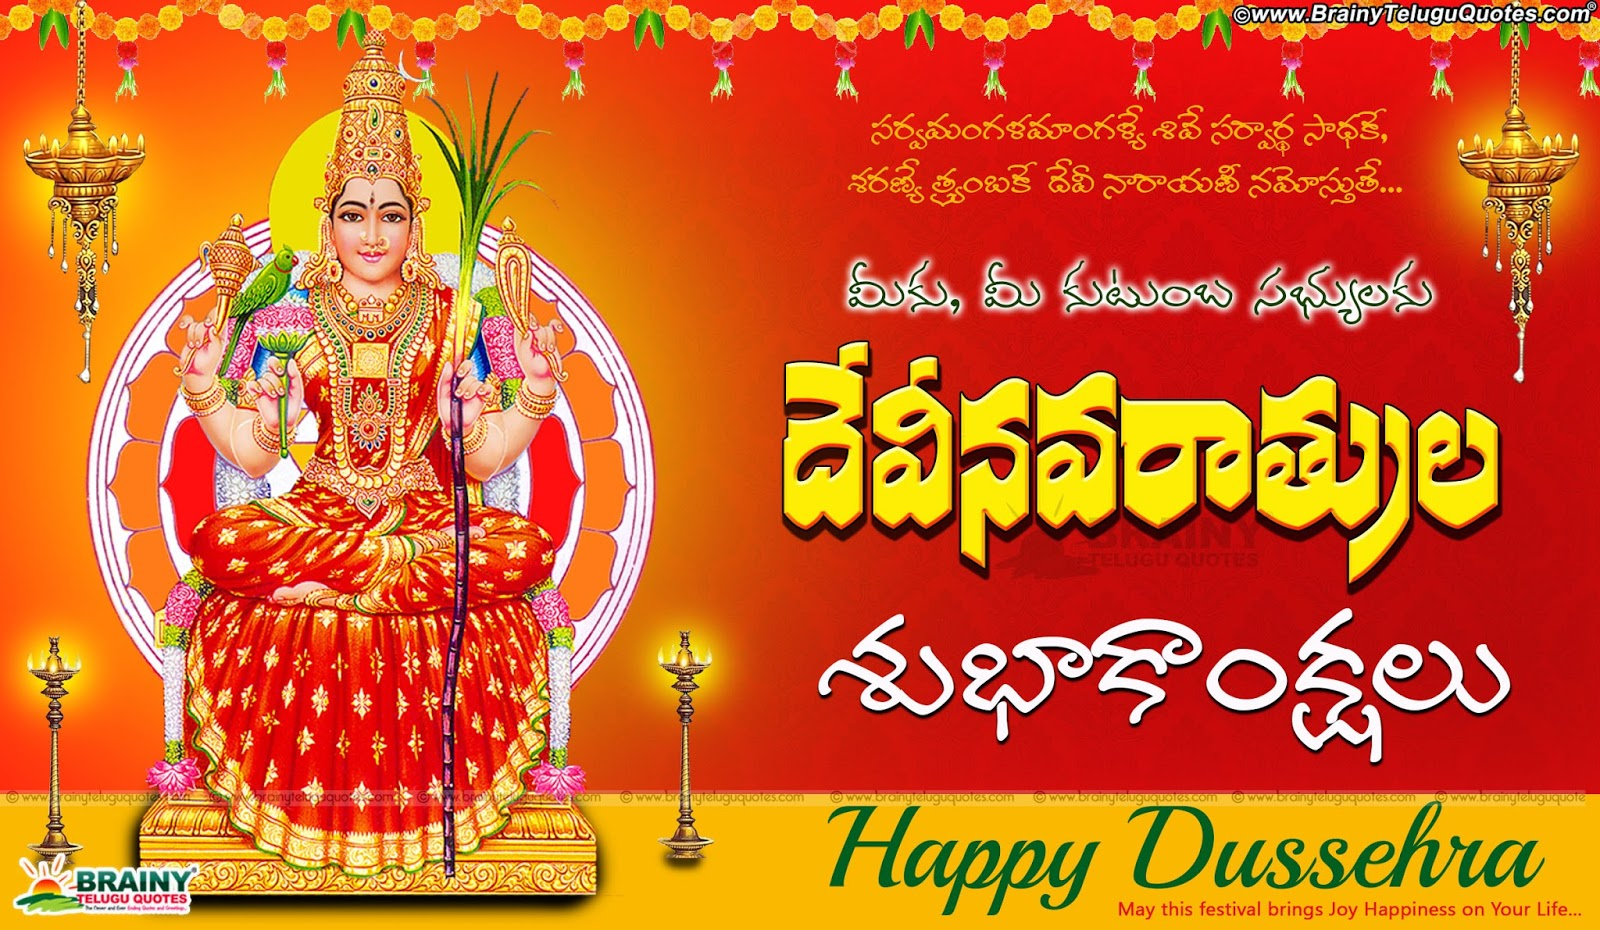 Dussehra 2017 telugu greetings sms messages wishes 6970635 dussehra 2017 telugu greetings sms messages wishes 6970635 ginkgobilobahelpfo m4hsunfo